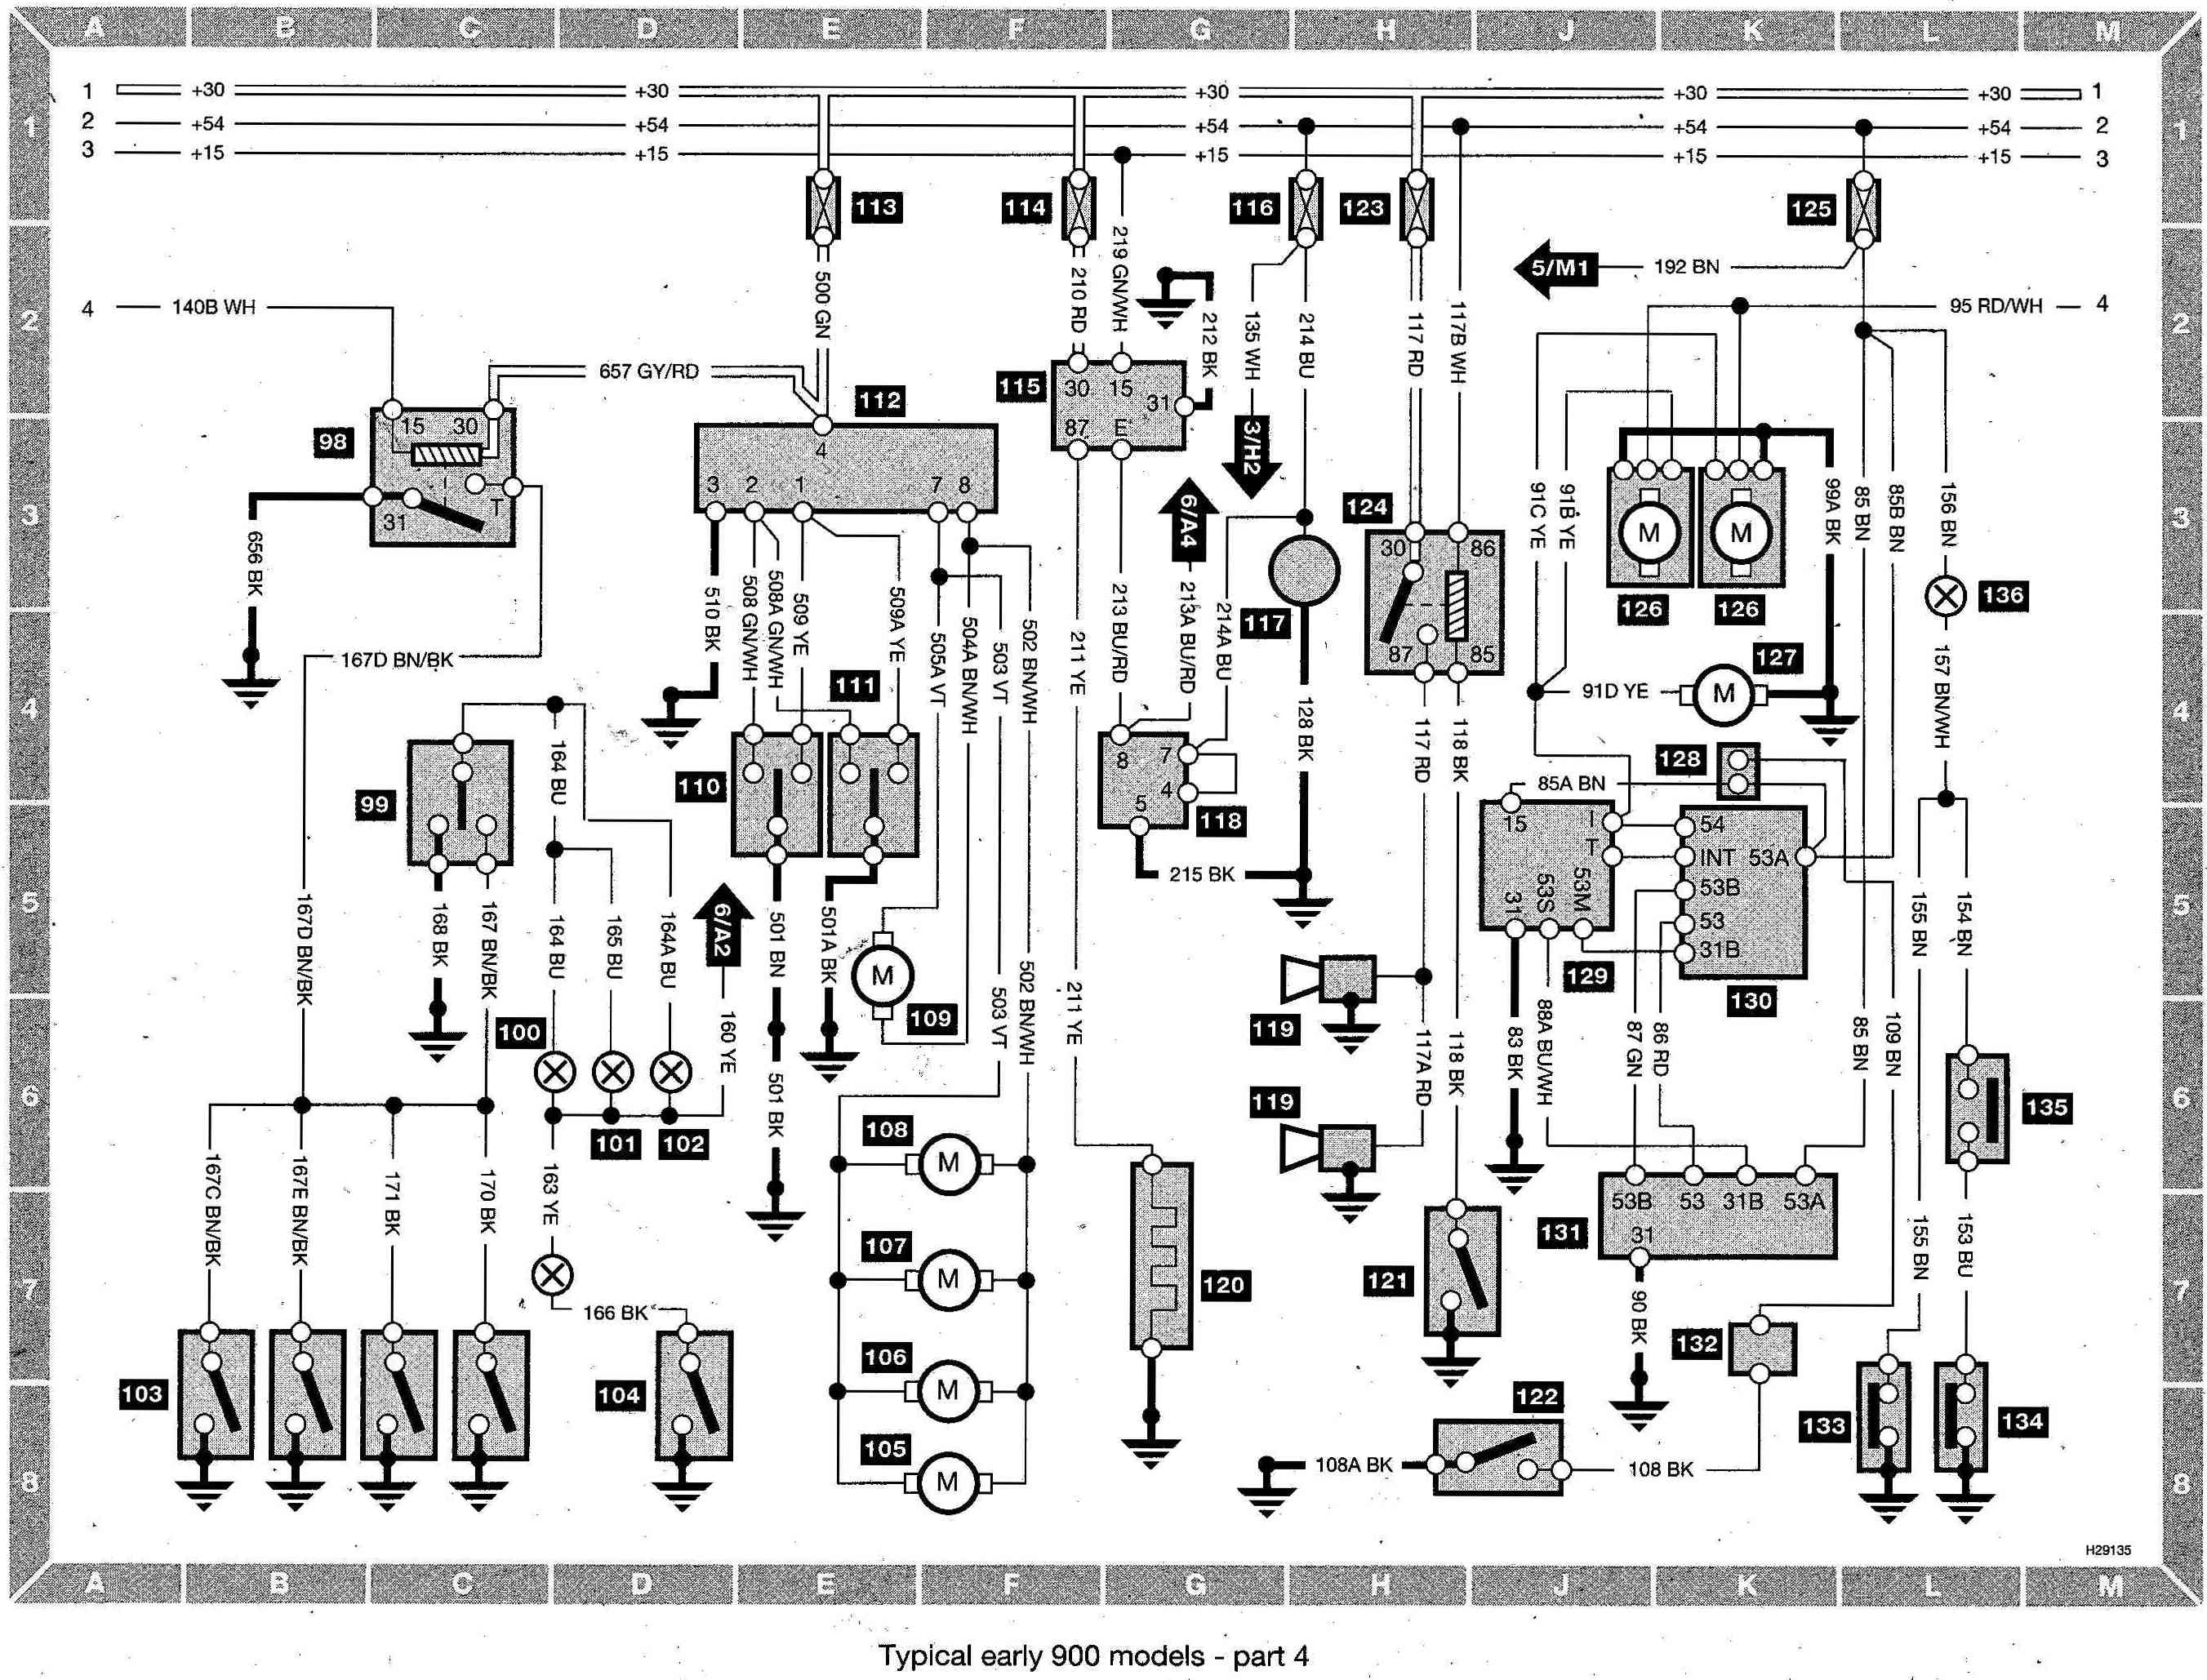 saab ignition wiring diagram get free image about wiring diagram